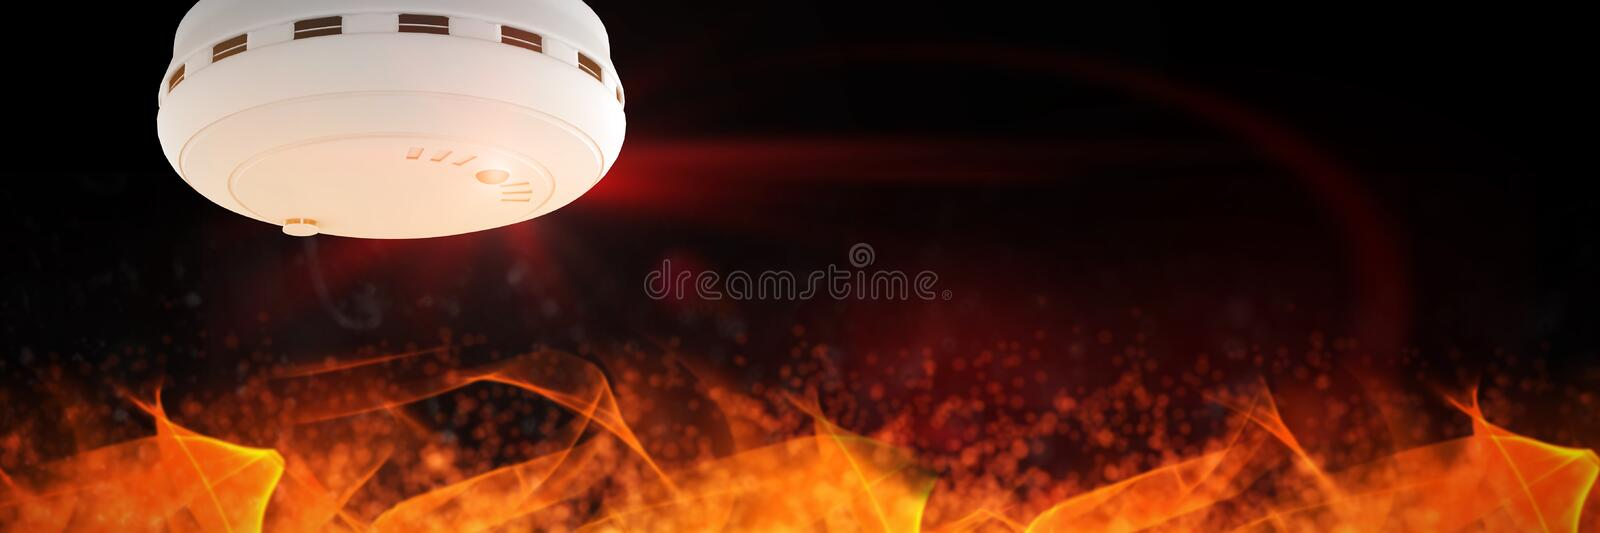 Composite image of smoke and fire detector stock illustration